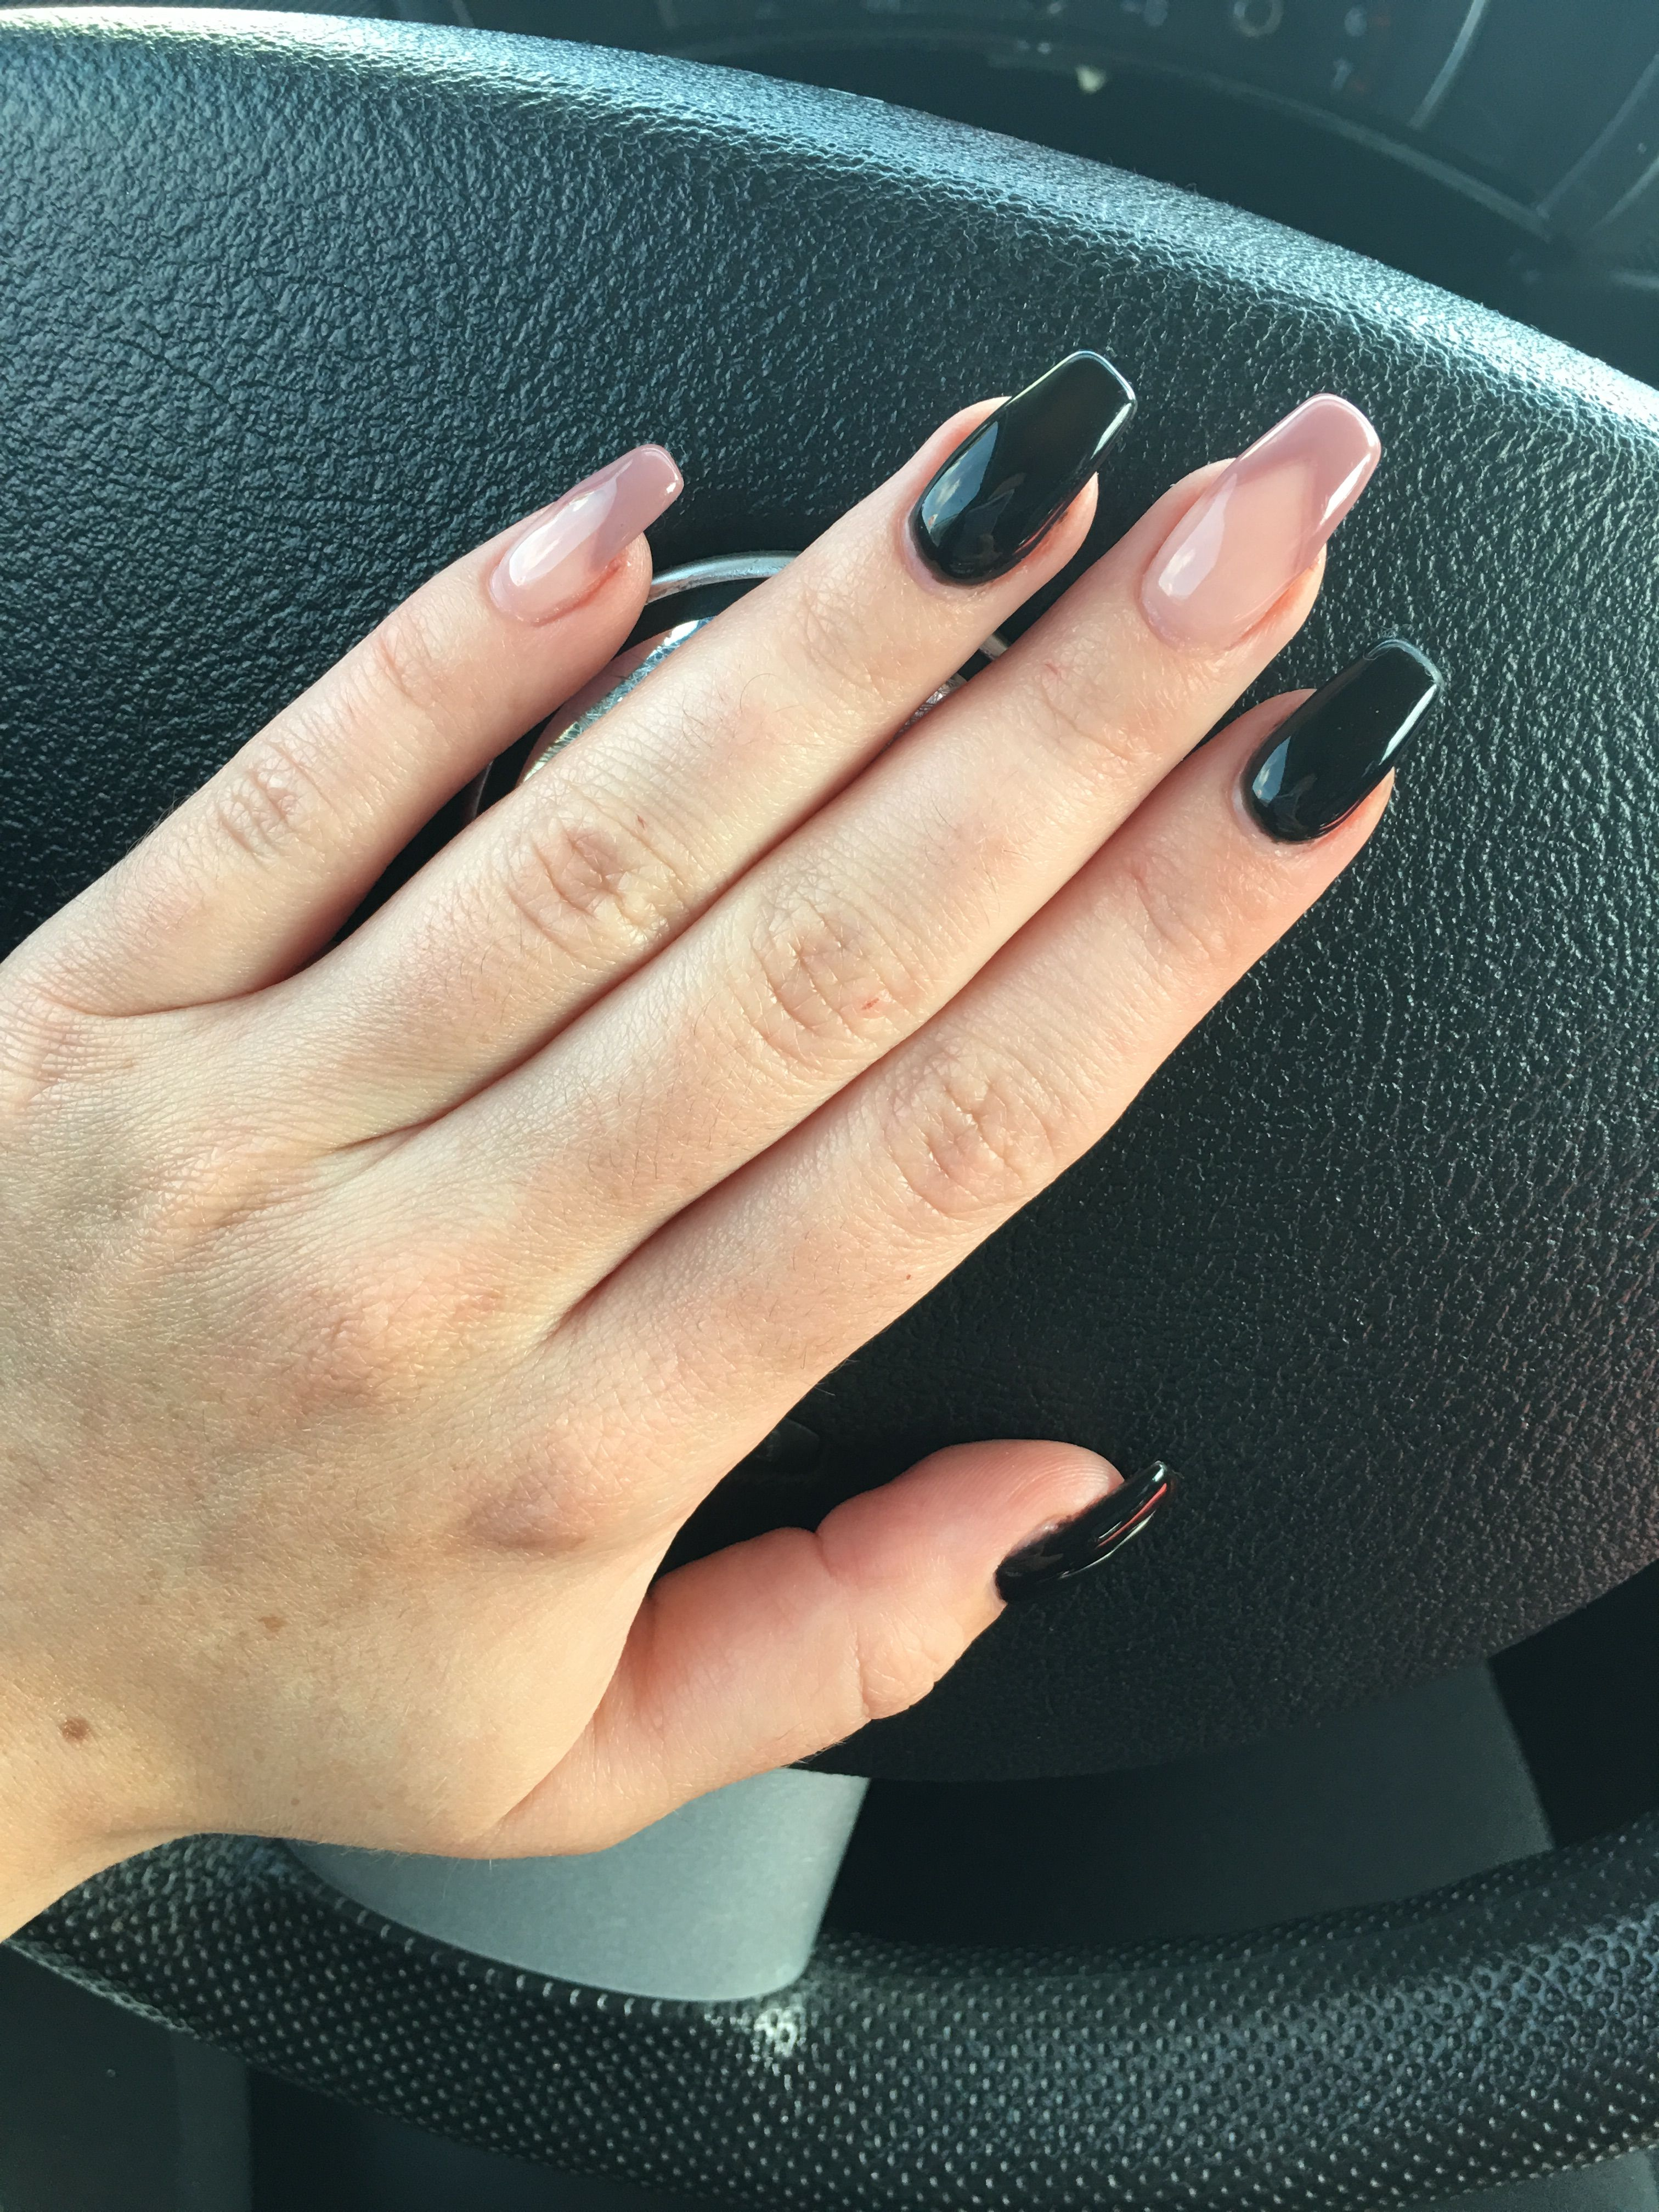 fall 2017 nails coffin shape acrylic black and nude | Nails | Pinterest